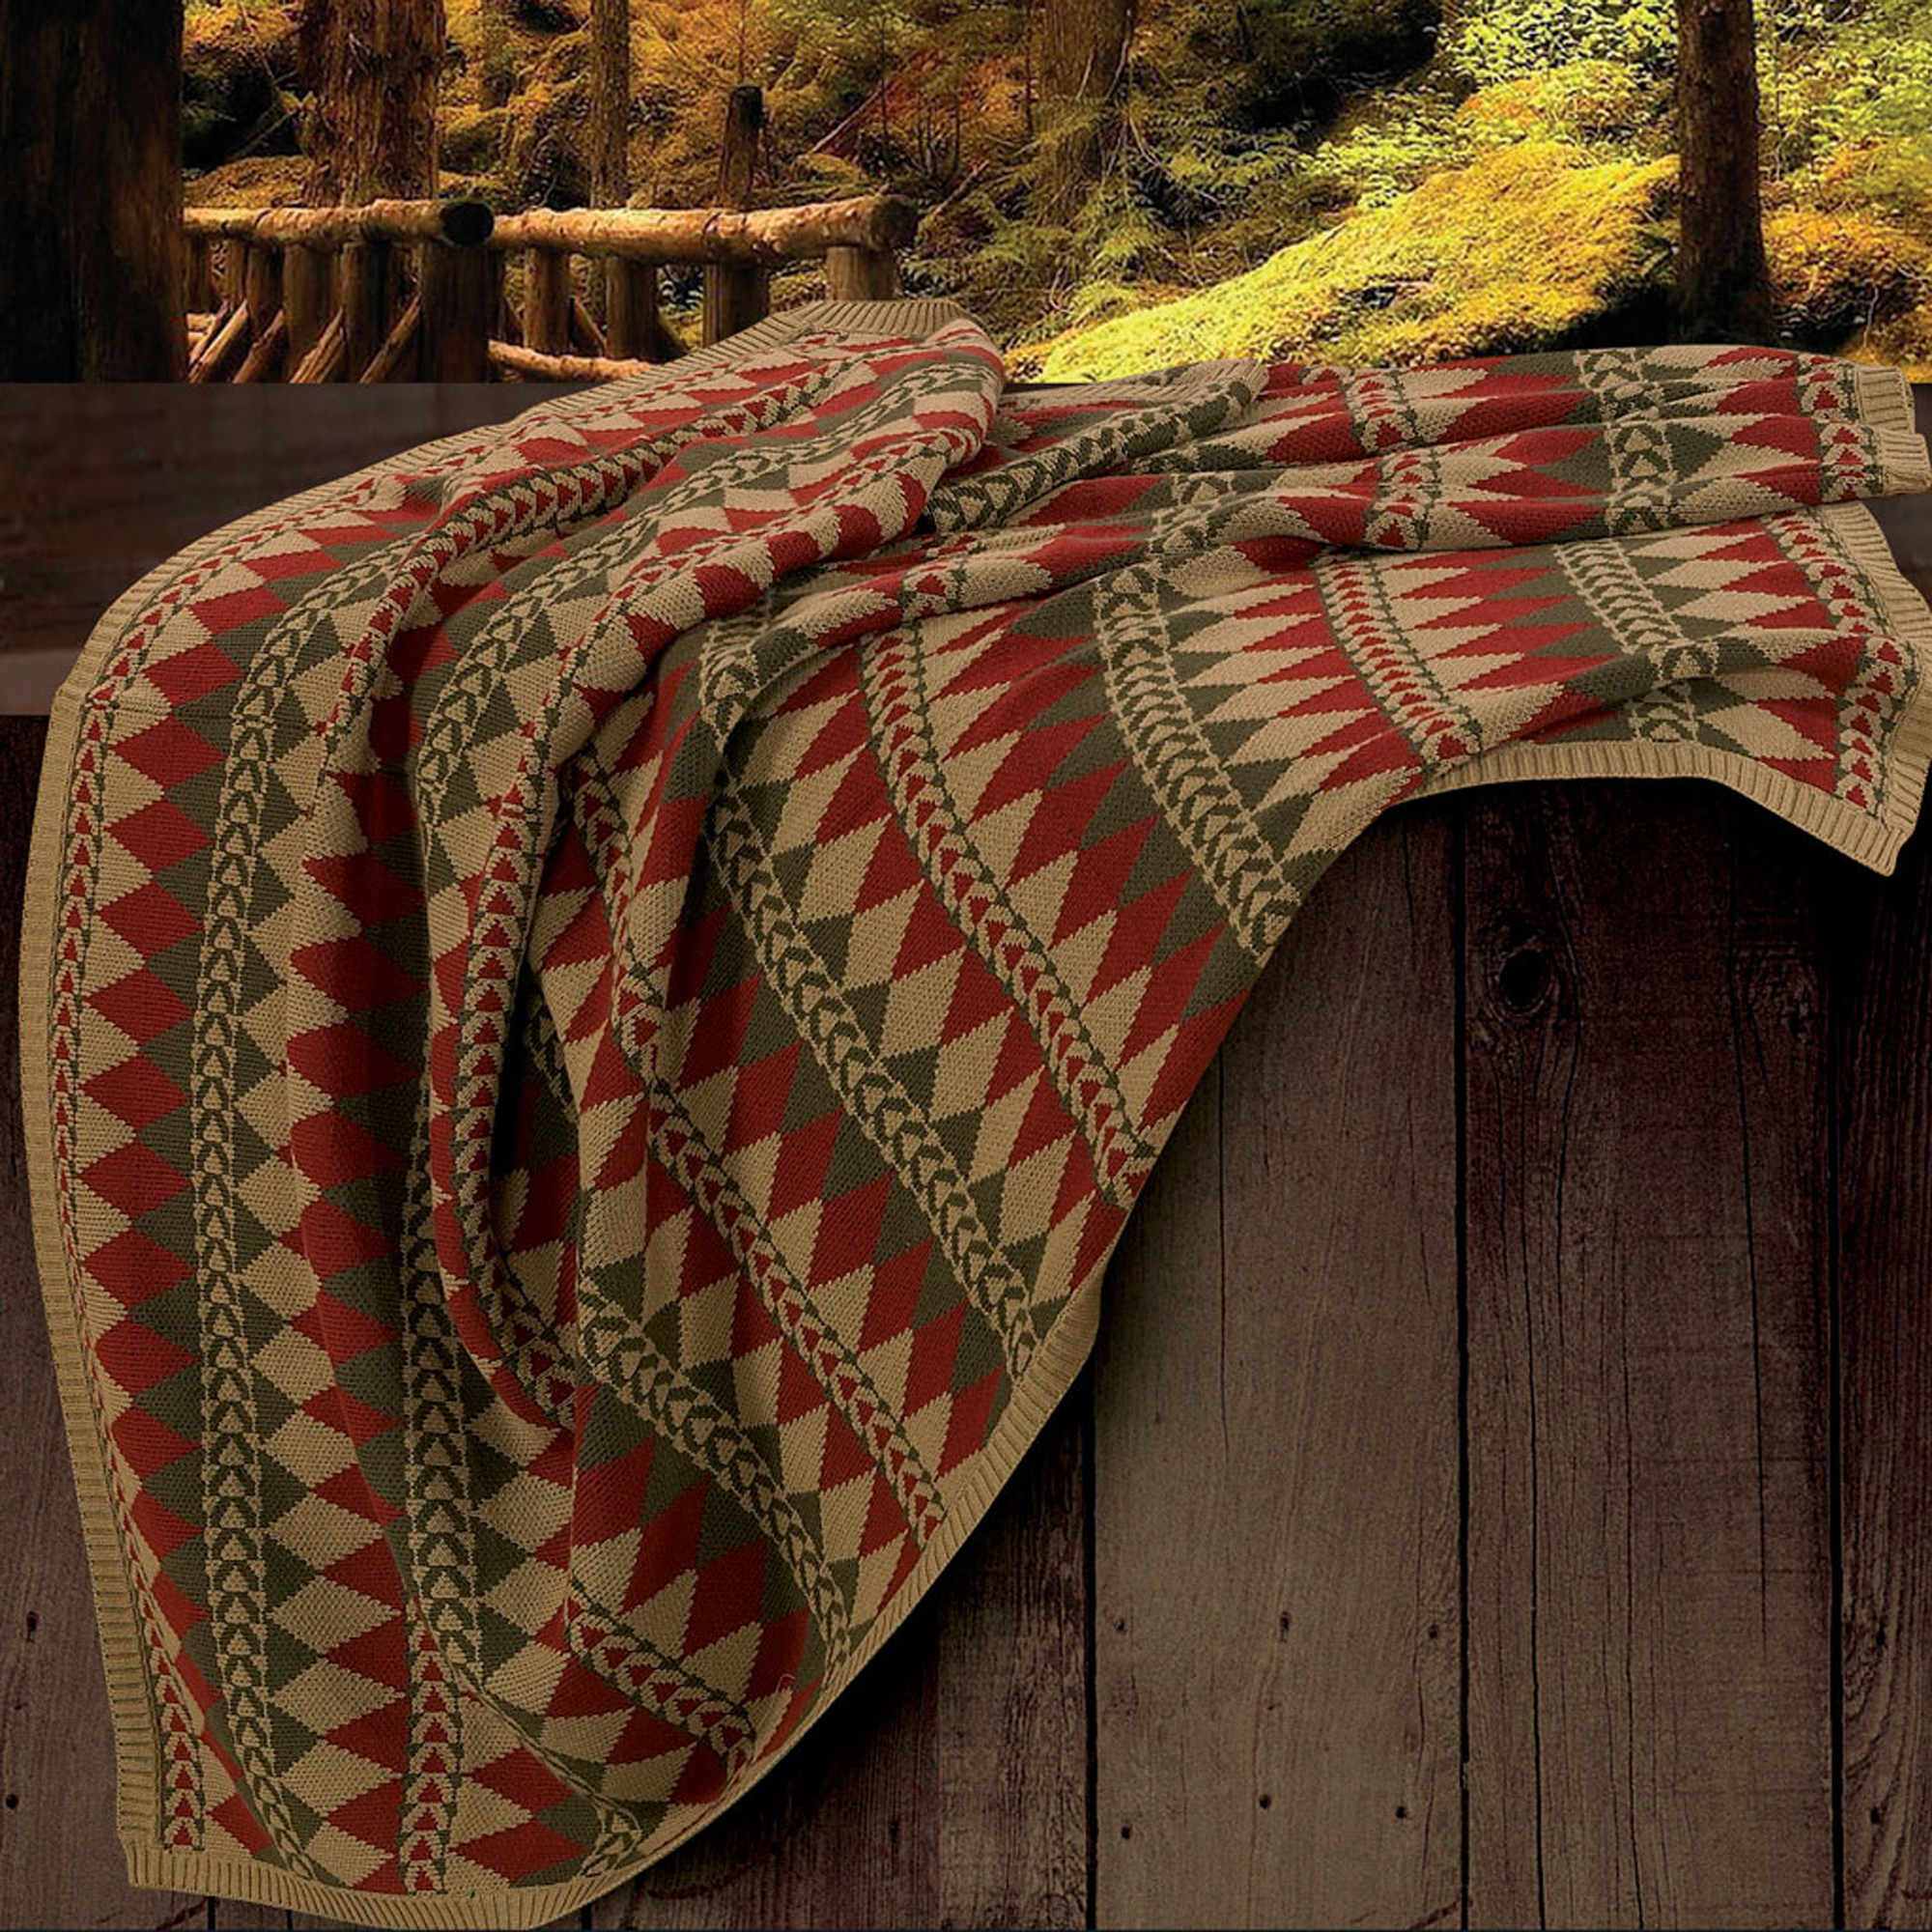 TR5002-OS-OC - Diamond Knit Throw - Western Bedding by HiEnd Accents